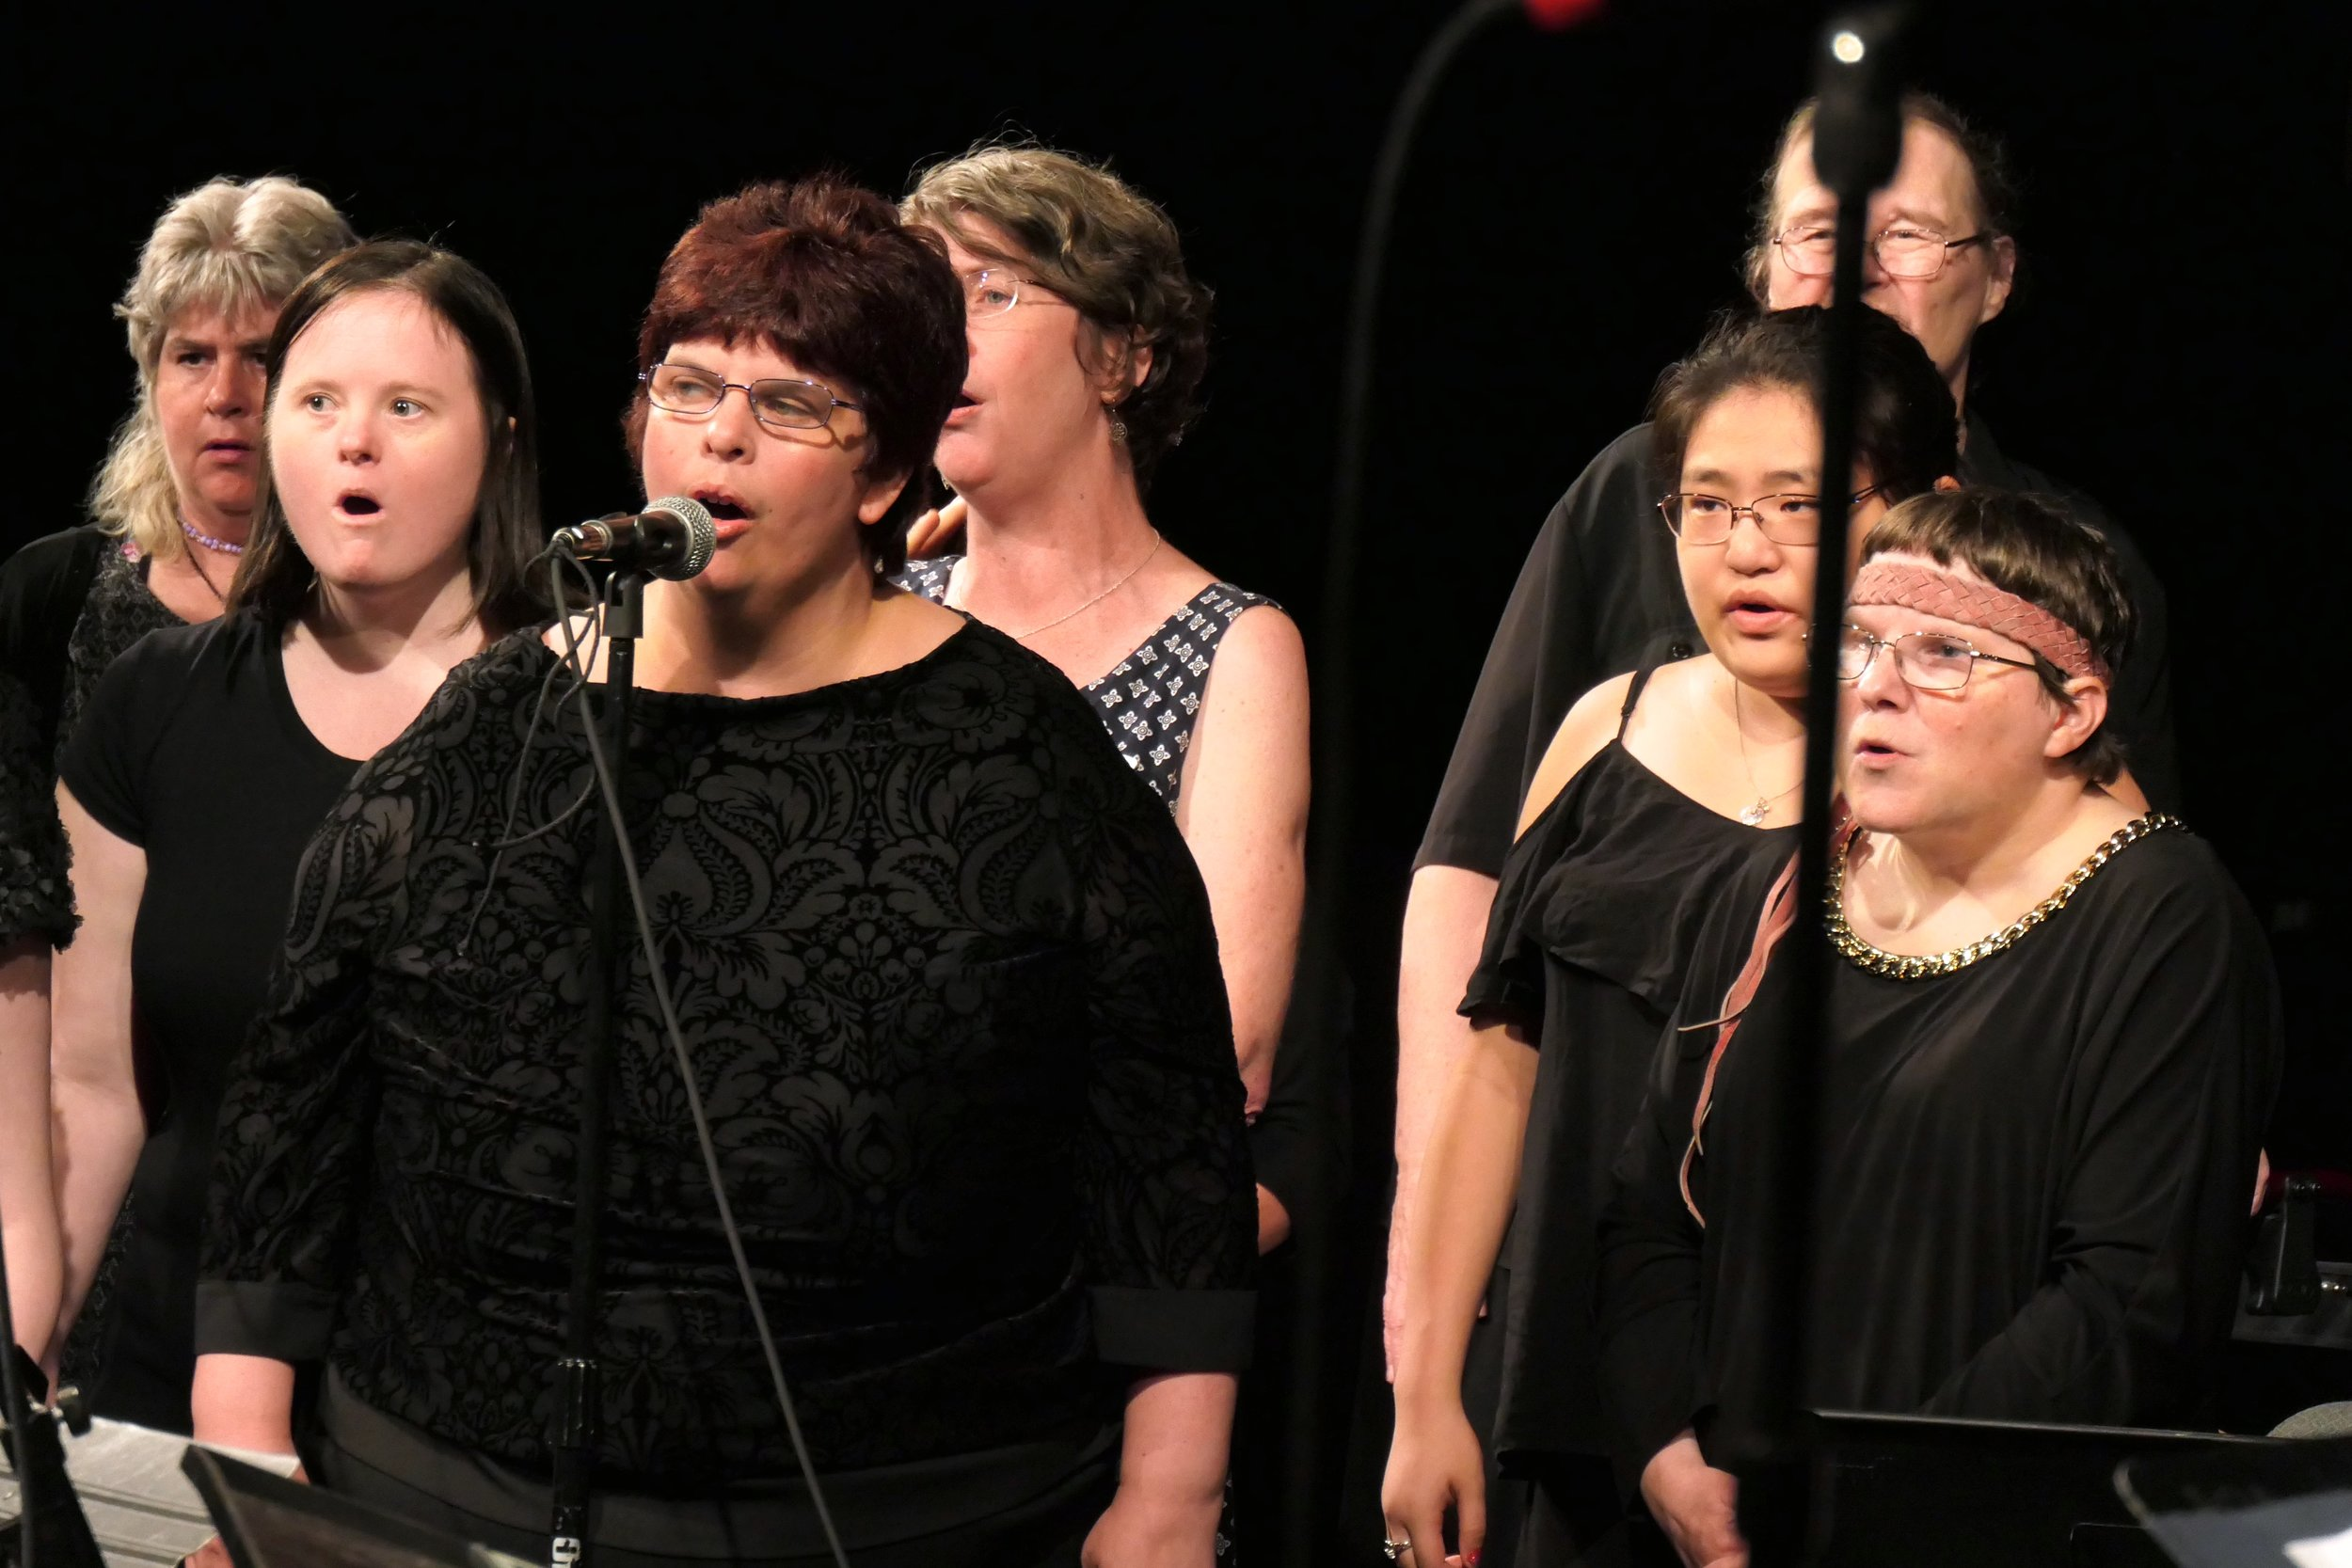 Group of women singing , some with microphones, in a dark room